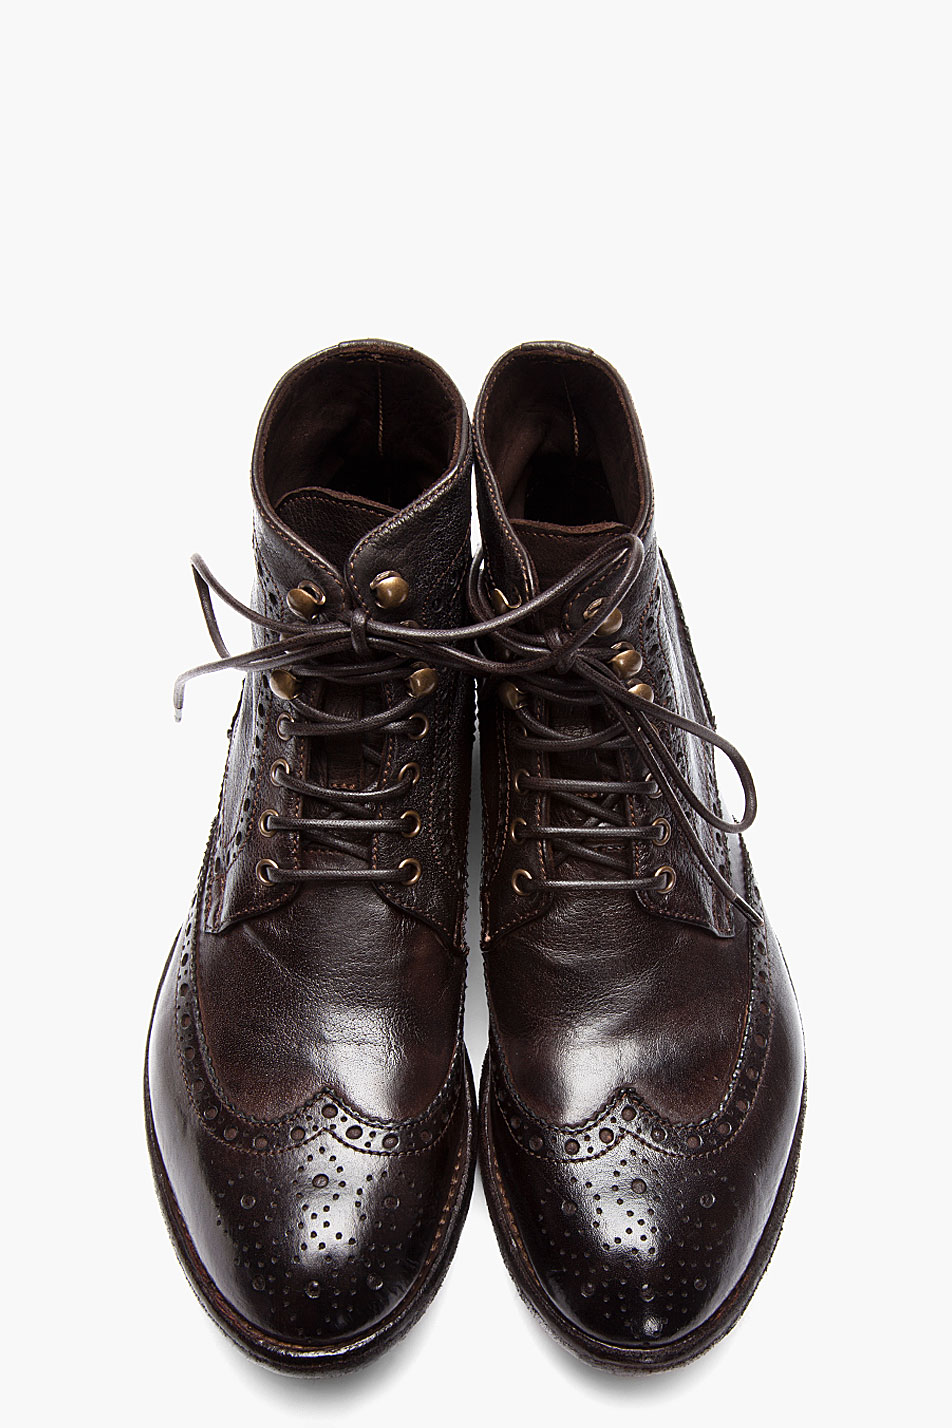 Officine Creative Brown Leather Ignis Wingtip Brogue Boots